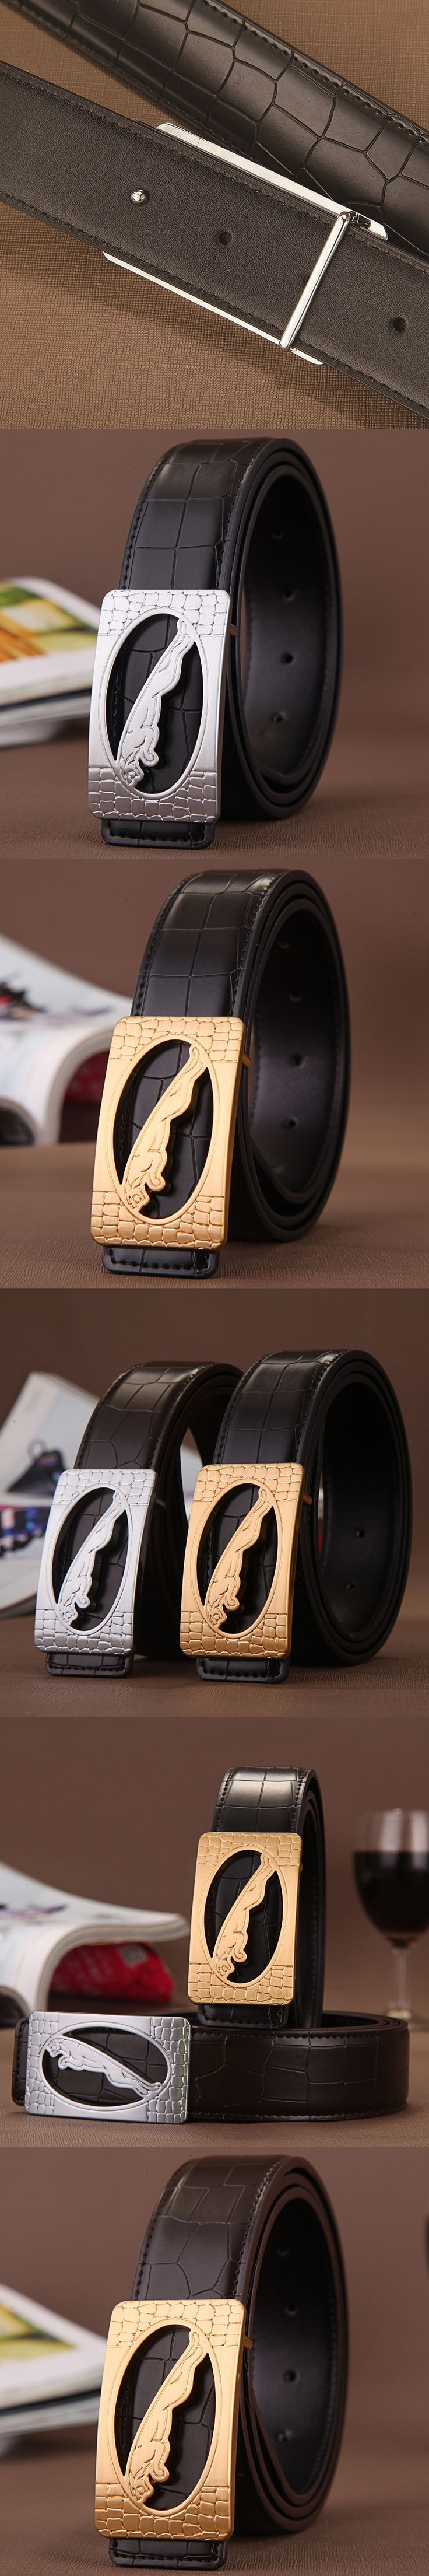 Man Belt 2016 Fashion New Luxury Genuine Leather Designer Belts Men High Quality Smooth Buckle Belt For Business Male Wide Belts